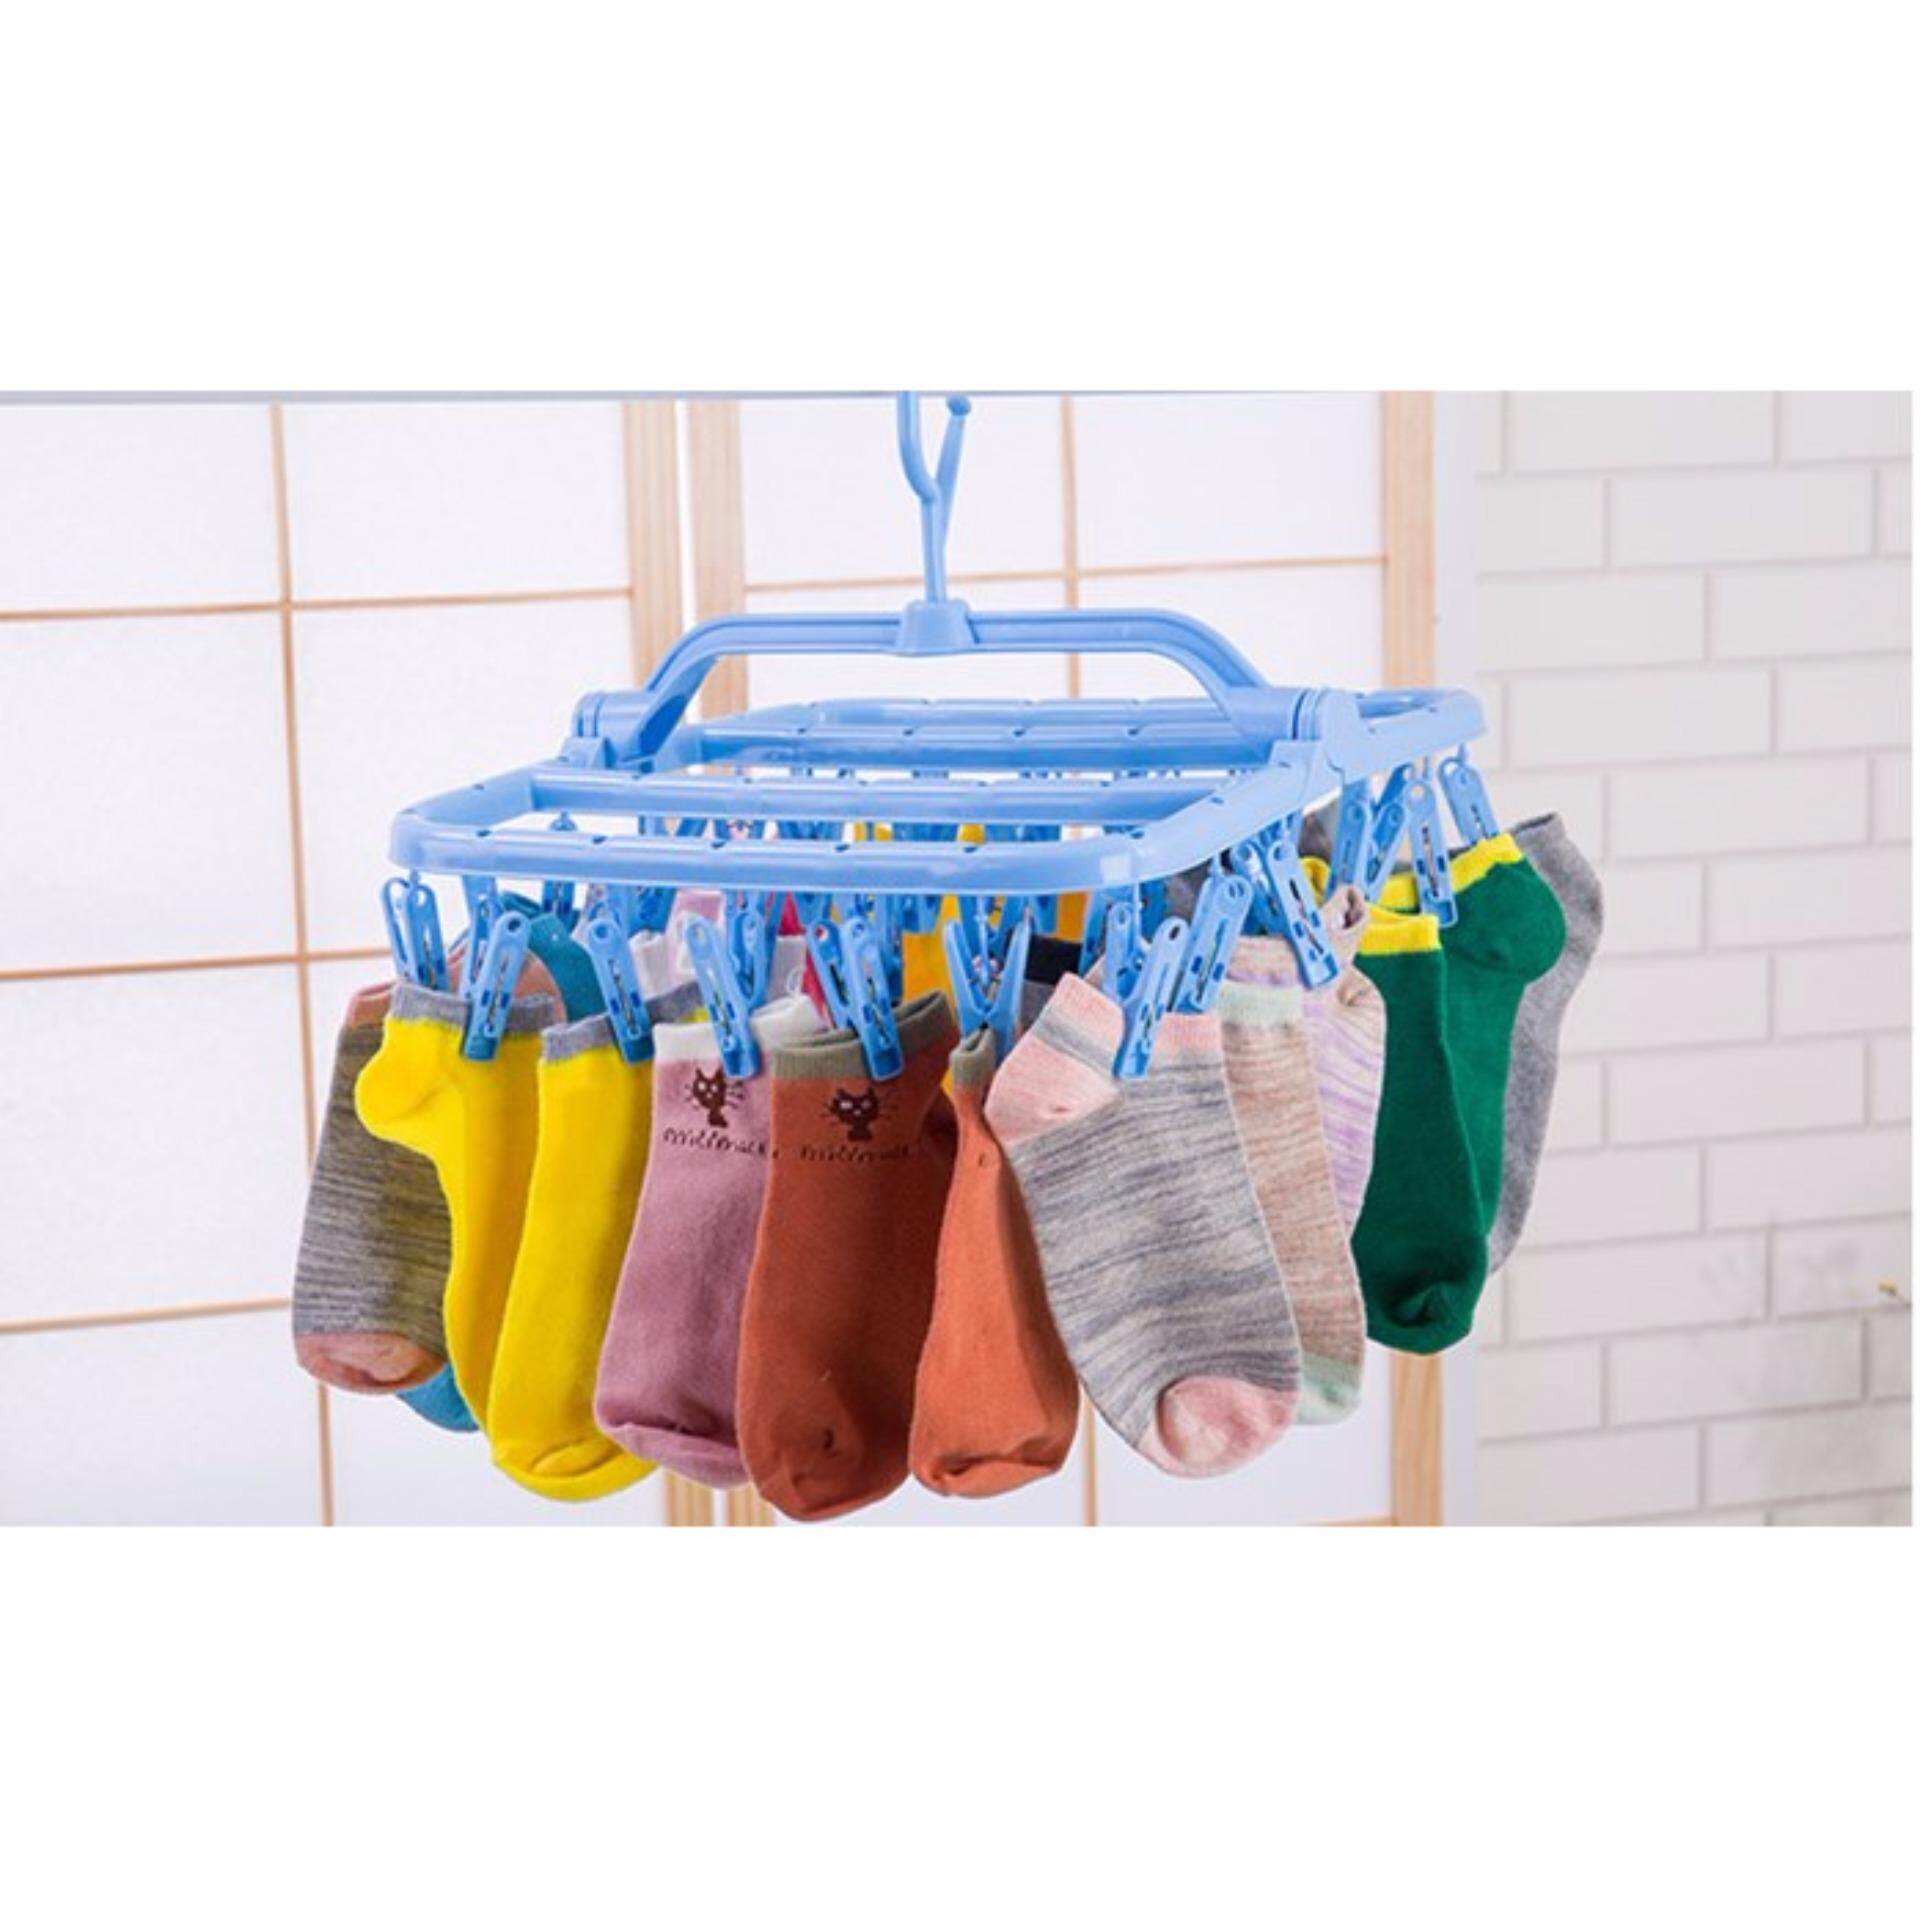 32 Clip Drying Hanger Children's underwear home folding Baby Clothes Rod to dry socks - Random Colour